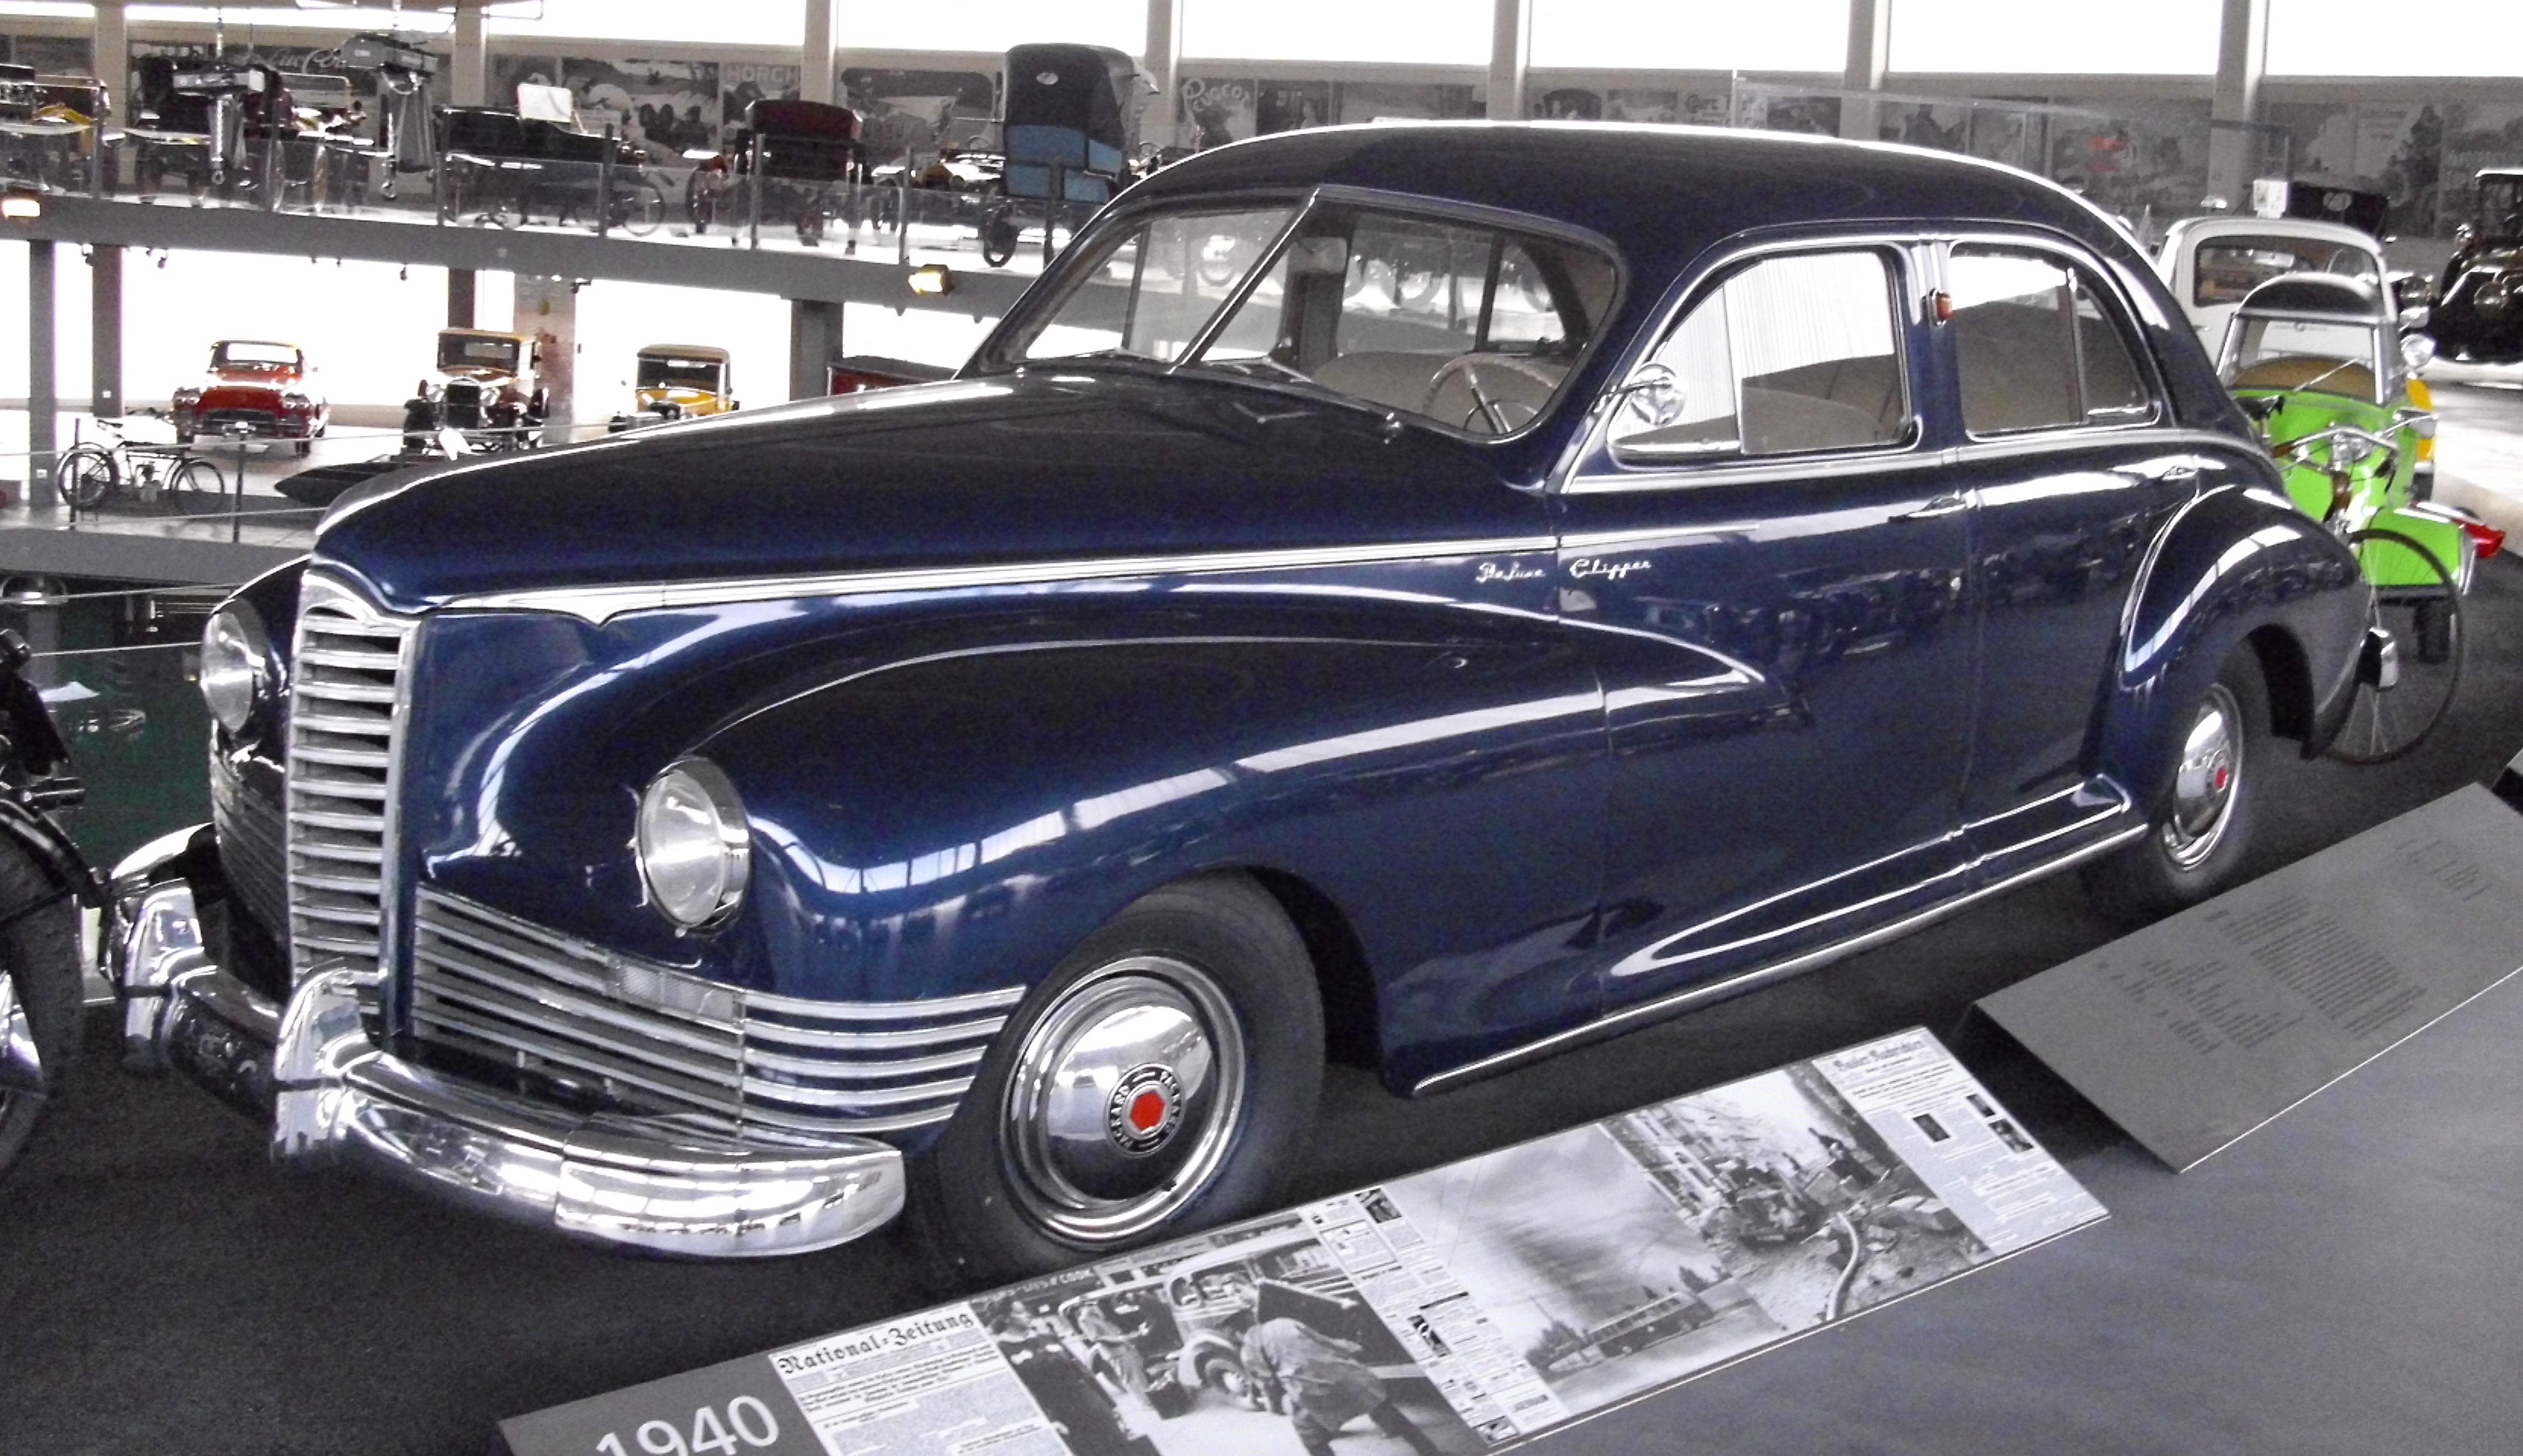 File:Packard Clipper Eight Deluxe Touring Sedan Model 2111 1947.JPG